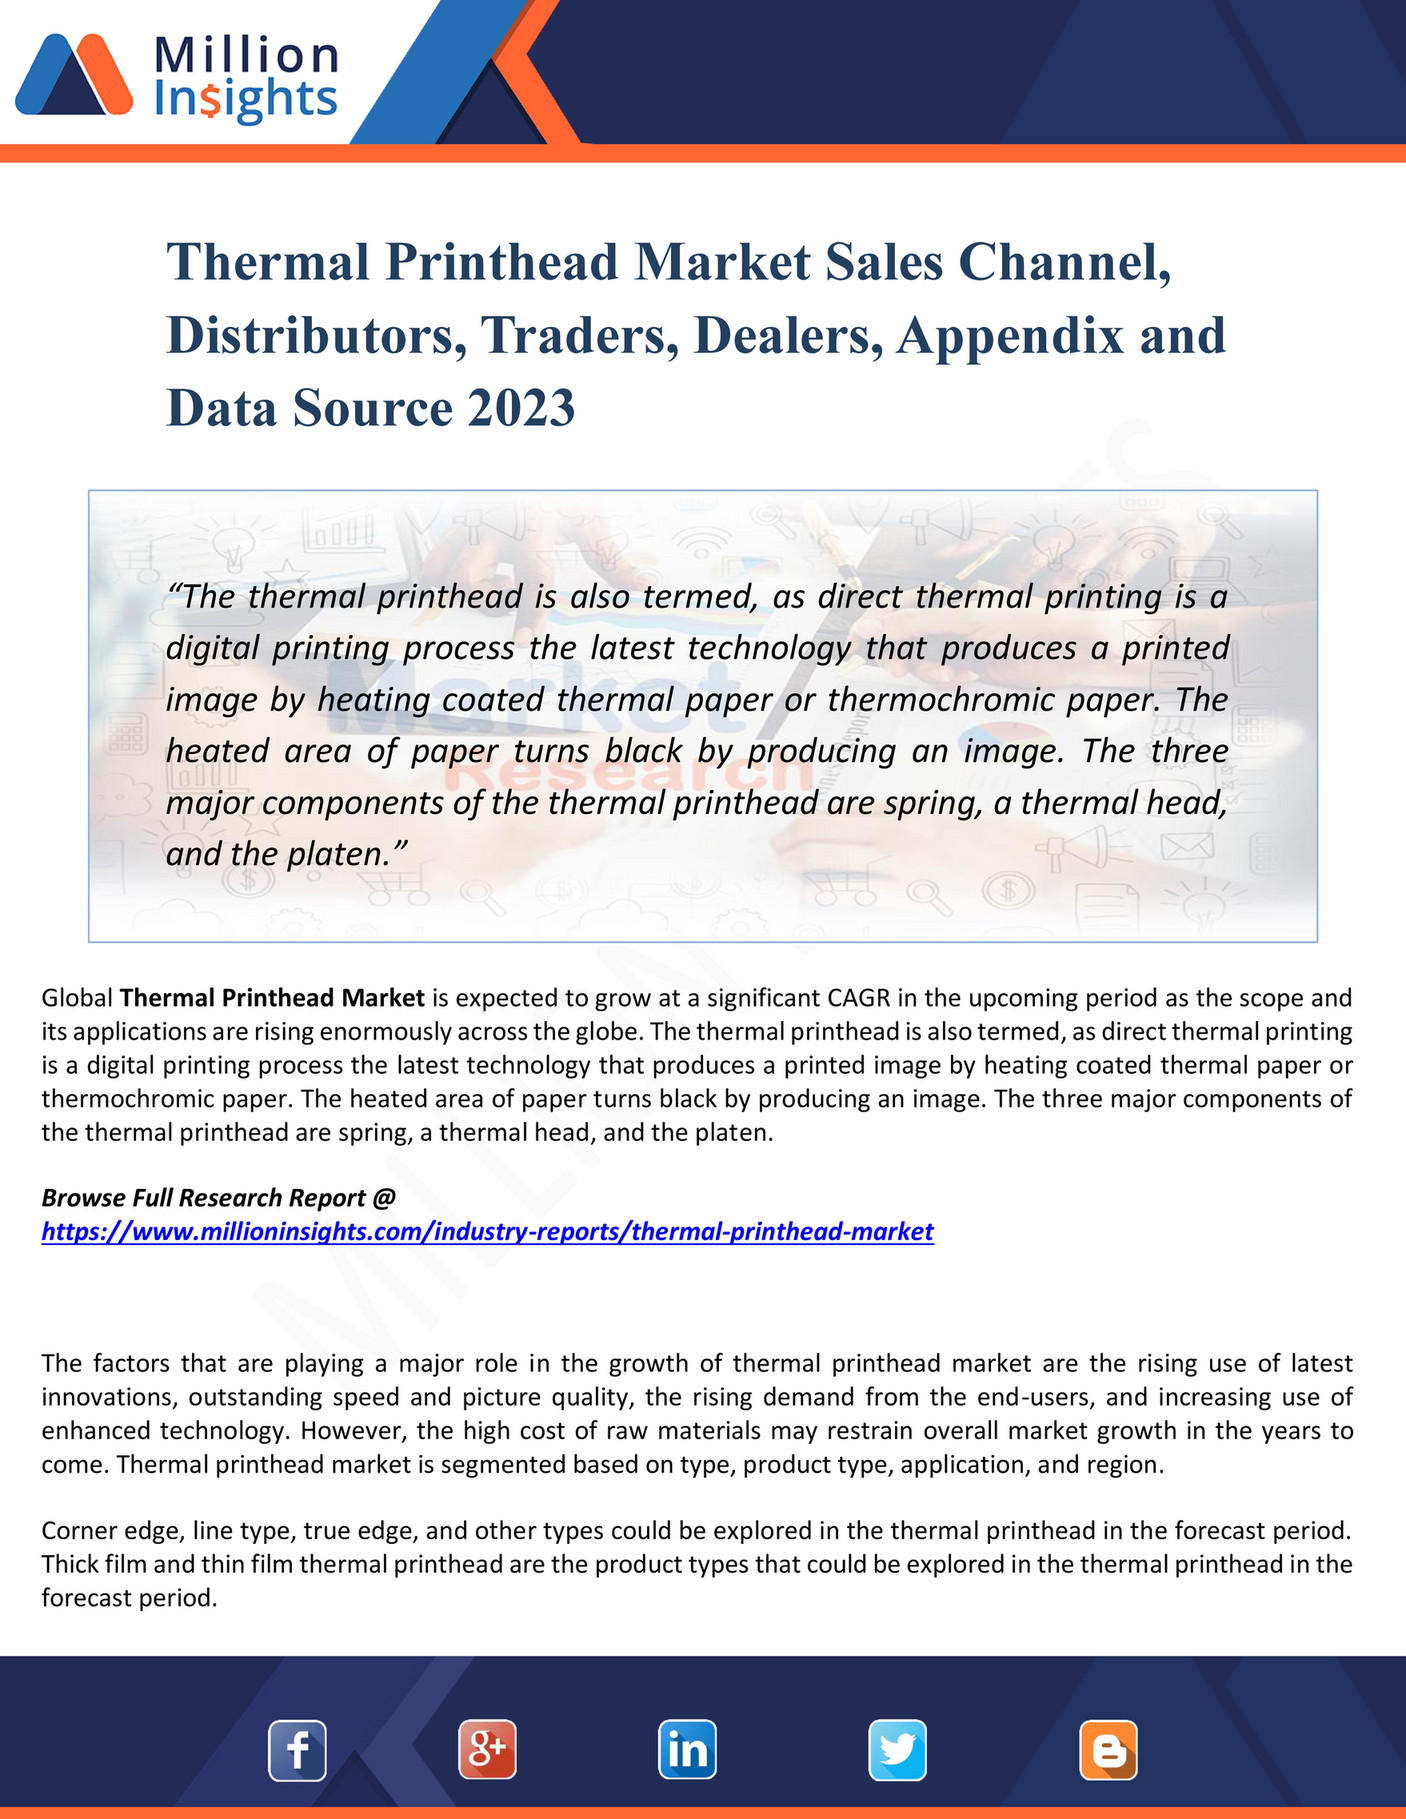 My publications - Thermal Printhead Market Sales Channel